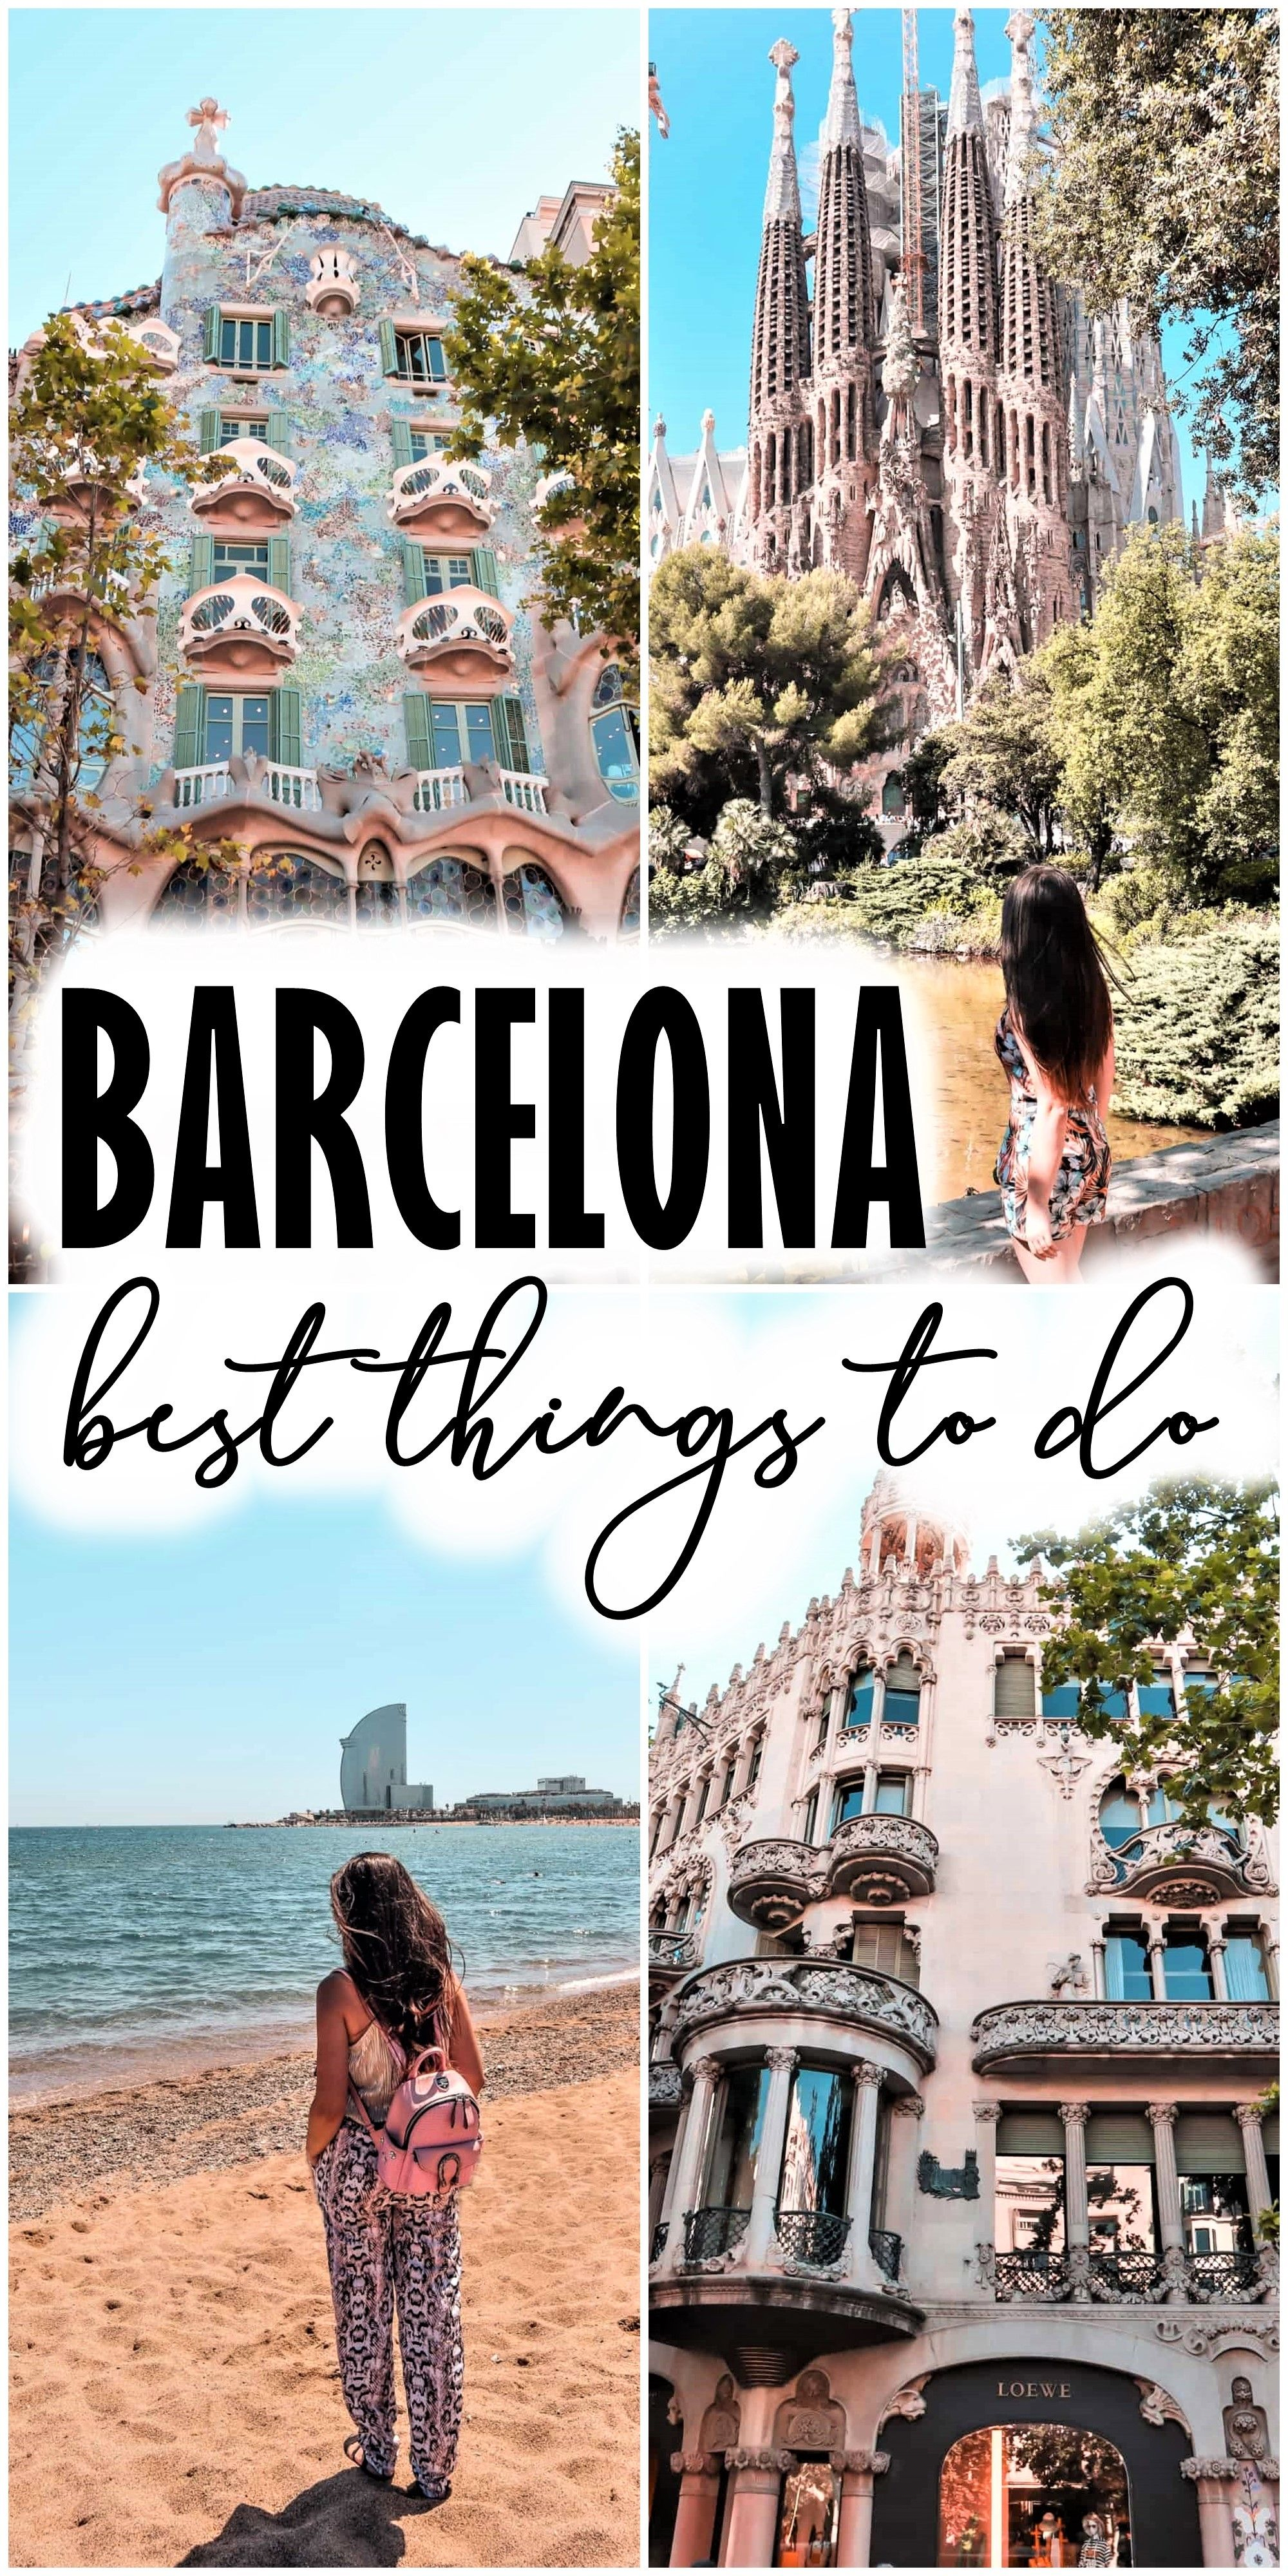 I believe that Barcelona can successfully compete for the title of the best destination for a city break in Europe. 2 days in Barcelona are enough to taste a little of everything I listed above. Especially since it is quite easy to get around the city. barcelona | best things to do in barcelona | where to stay in barcelona | places to visit in barcelona | 2 days in barcelona | barcelona spain | barcelona travel guide #barcelona #visitbarcelona #barcelonatravelguide #spain #2daysinbarcelona